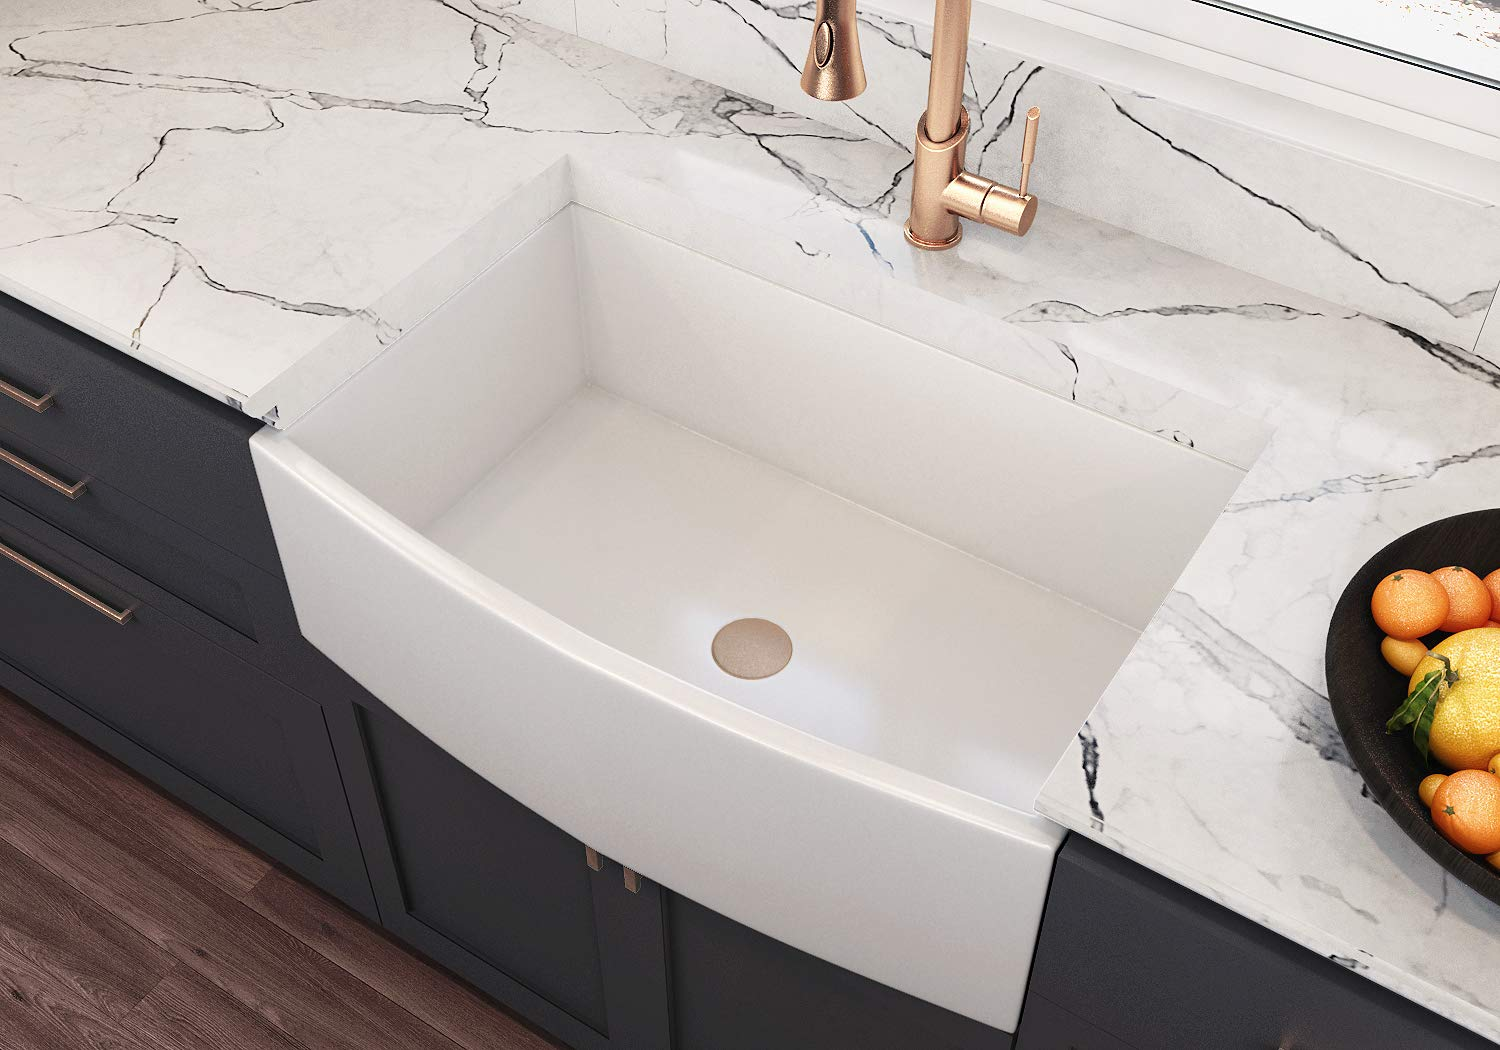 ✅AUTHENTIC FIRECLAY KITCHEN SINK: Our apron front sink, made of SPECIAL/UNIQUE WHITE CLAY found only in certain regions of the world, is solid white throughout and REPAIRABLE. Considered the best choice of undermount fireclay sink for rigorous use. Moccoa's kitchen sinks are woman-owned business. ✅STYLISH & VERSATILE: Stylish farmhouse sinks features an apron-front for easy reach and effortless style. Designs are inspired from vintage farmhouse sinks and are individually crafted by hand for a beautiful, sturdy, distinctive, clean look. Farmhouse sinks are well-suited for traditional or modern types of kitchens. ✅40% THICKER THAN Competitors: Unlike with porcelain sinks,fireclay sinks are much more DURABLE and designed for heavy use. Fireclay farmhouse sinks are capable of being fired at extremely high temperatures (over 2200° Fahrenheit). MOCCOA's fireclay sinks are SHOCK, SCRATCH, CHIP, HEAT, & STAIN RESISTANT. ✅Offers Multiple Installation Options: Fireclay sink undermount has multiple installation options - RECESSED or APRON FRONT that will enhance the style of your traditional or modern style of kitchen. ✅REVERSIBLE FIRECLAY SINK: MOCCOA's apron front farmhouse sinks offer two elegant fronts for you to choose from. One side has a decorative fluted design and the other side is straight & smooth. You can choose which side to display depending on your preference.   Price $599.00 Plus Free Shipping * Oct2019